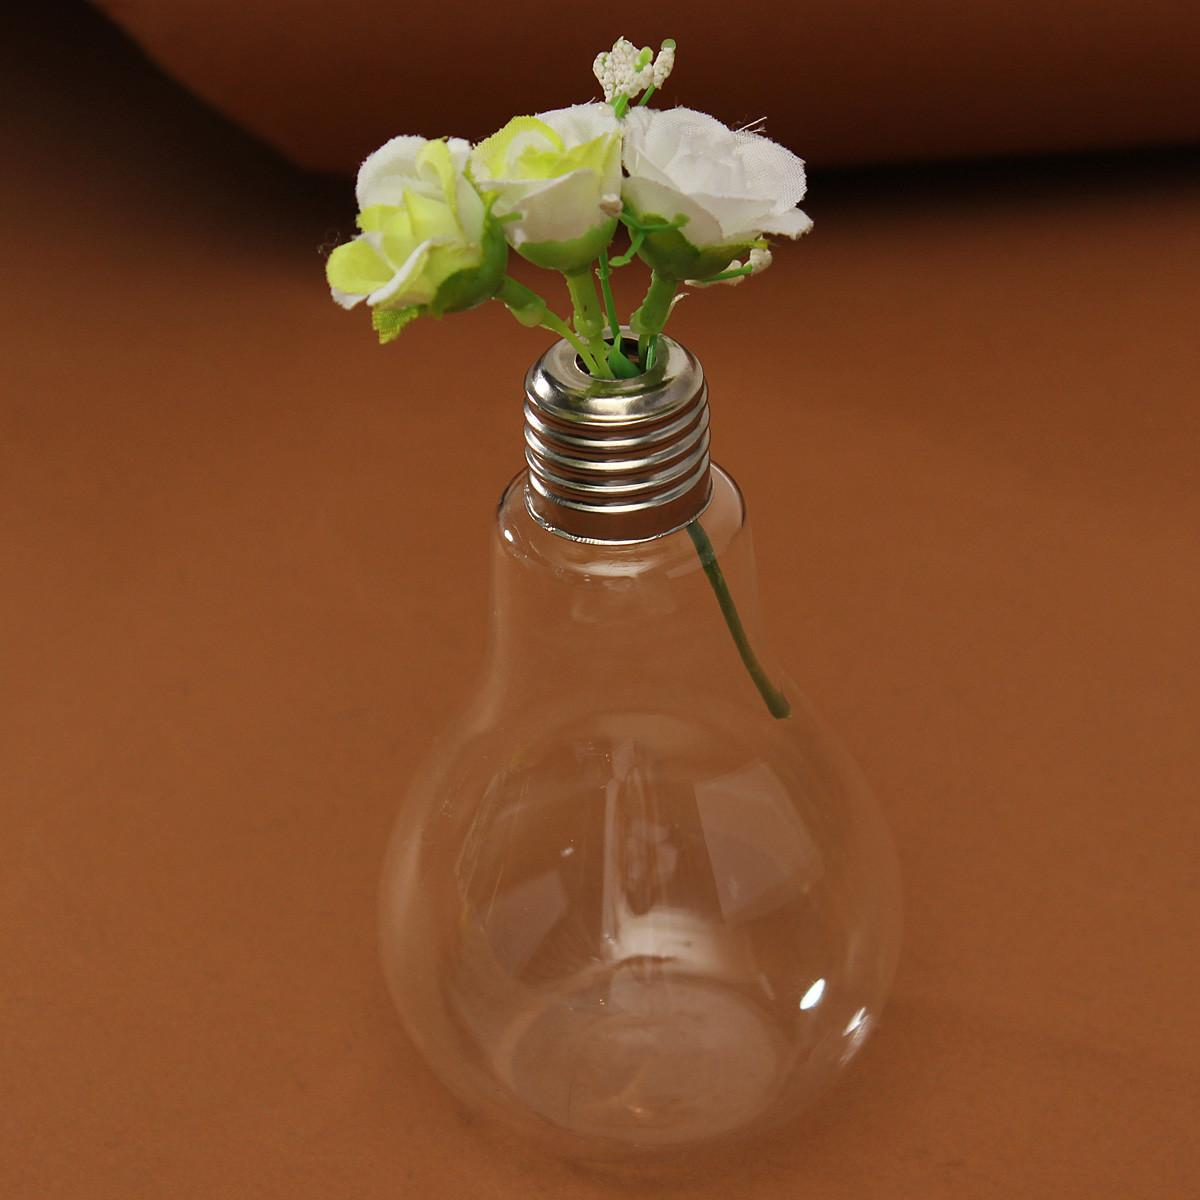 Light Bulb Shape Glass Flower Vase Hydroponic Container